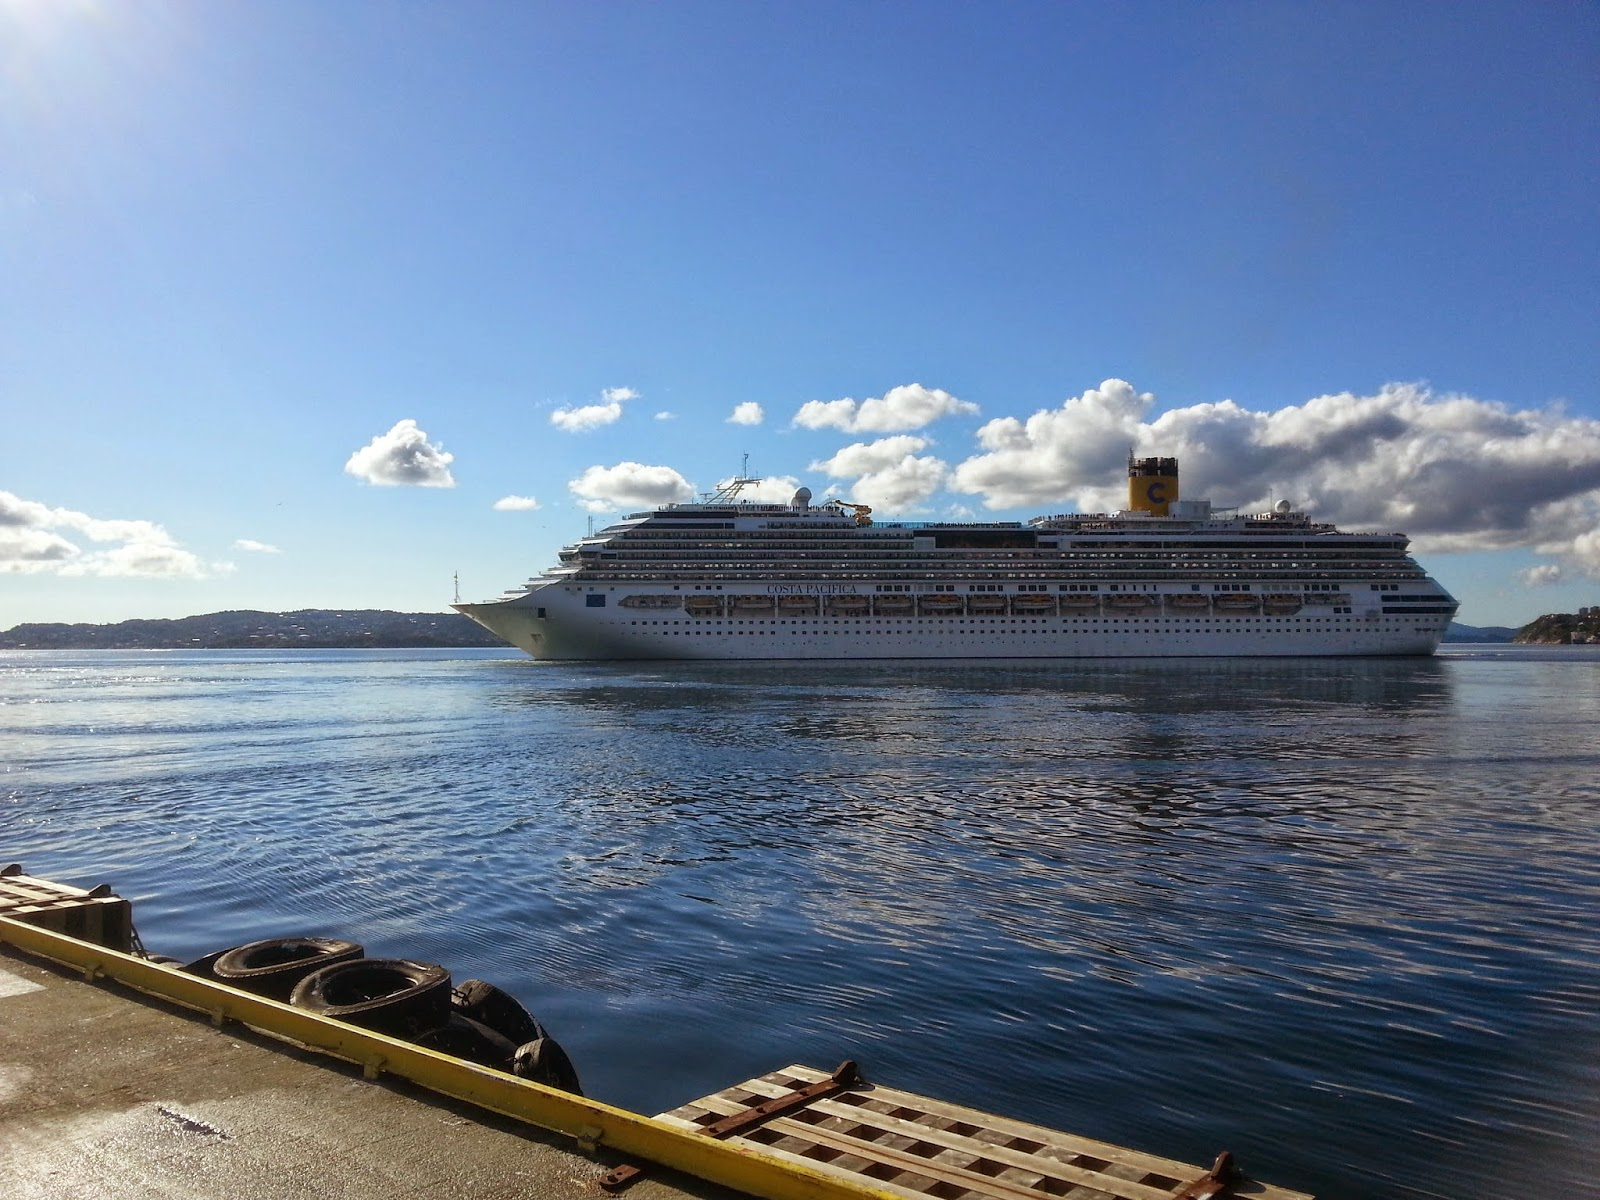 Cruise Ship Costa Pacifica in Bergen, Norway